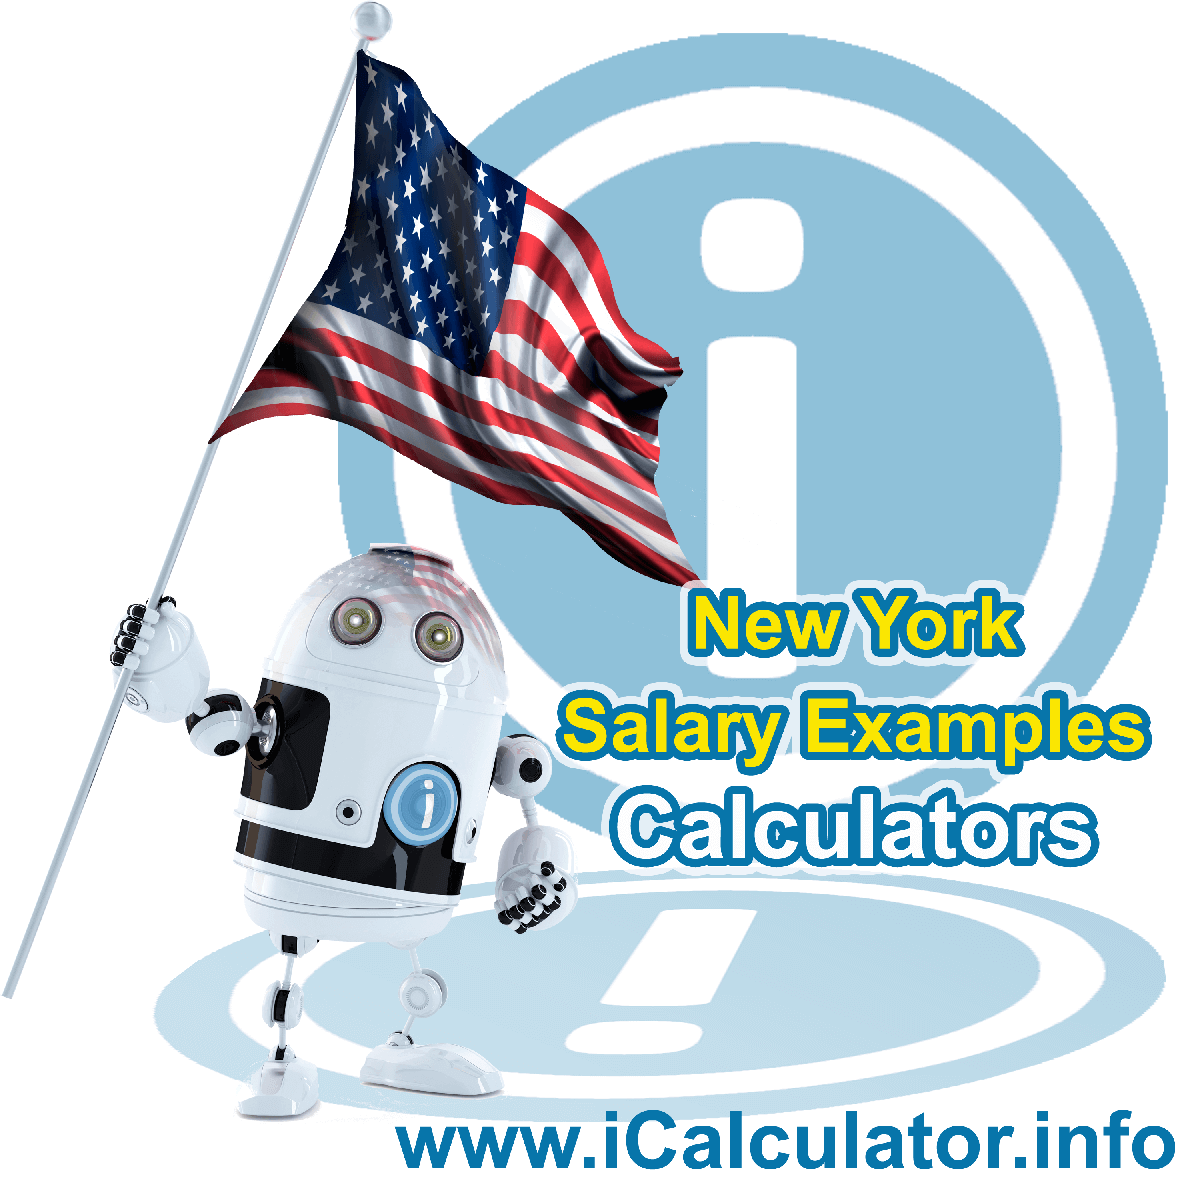 New York Salary Example for $290.00 in 2021 | iCalculator | $290.00 salary example for employee and employer paying New York State tincome taxes. Detailed salary after tax calculation including New York State Tax, Federal State Tax, Medicare Deductions, Social Security, Capital Gains and other income tax and salary deductions complete with supporting New York state tax tables